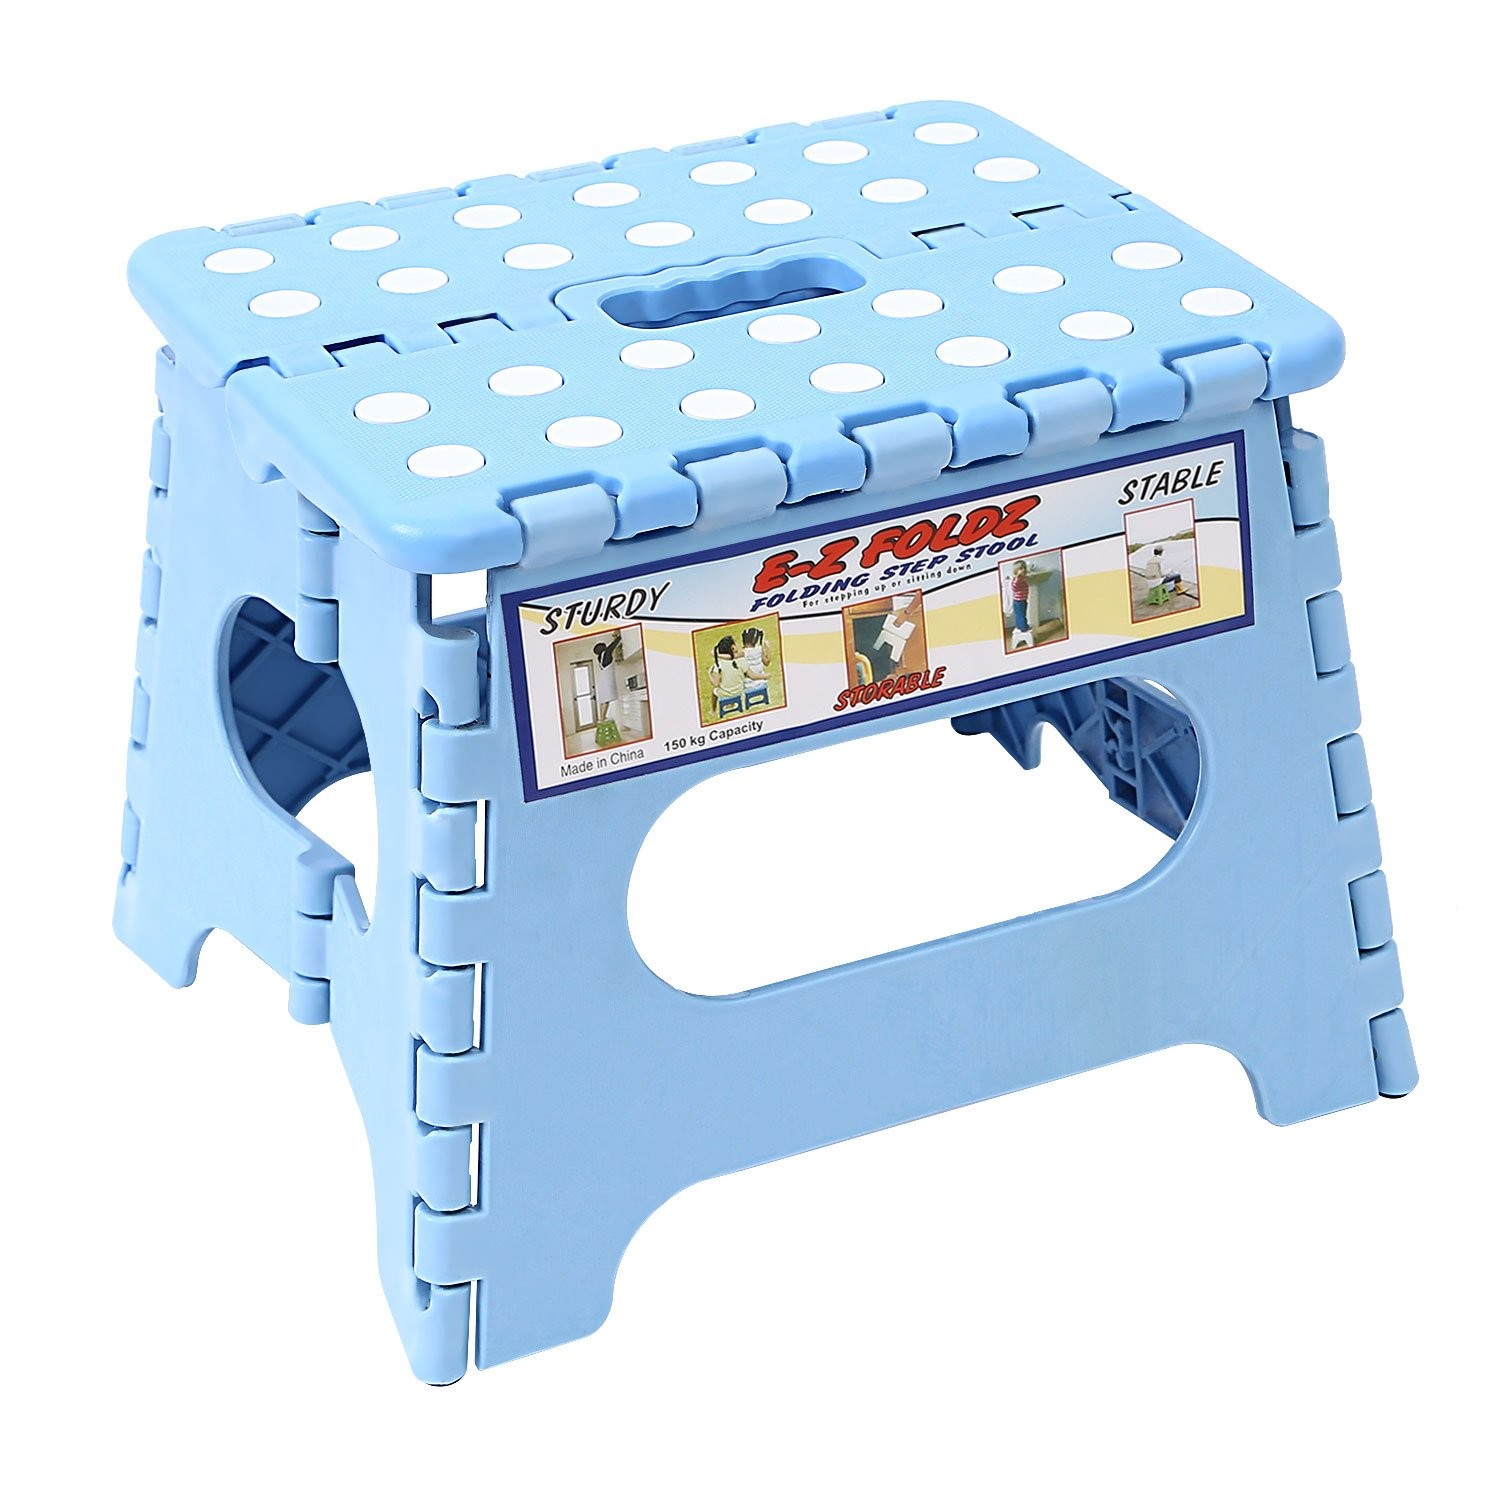 Maddott Folding Step Stool for Adults and Kids, 8x6x7.5inch, Holds up to 180 Lb, Blue